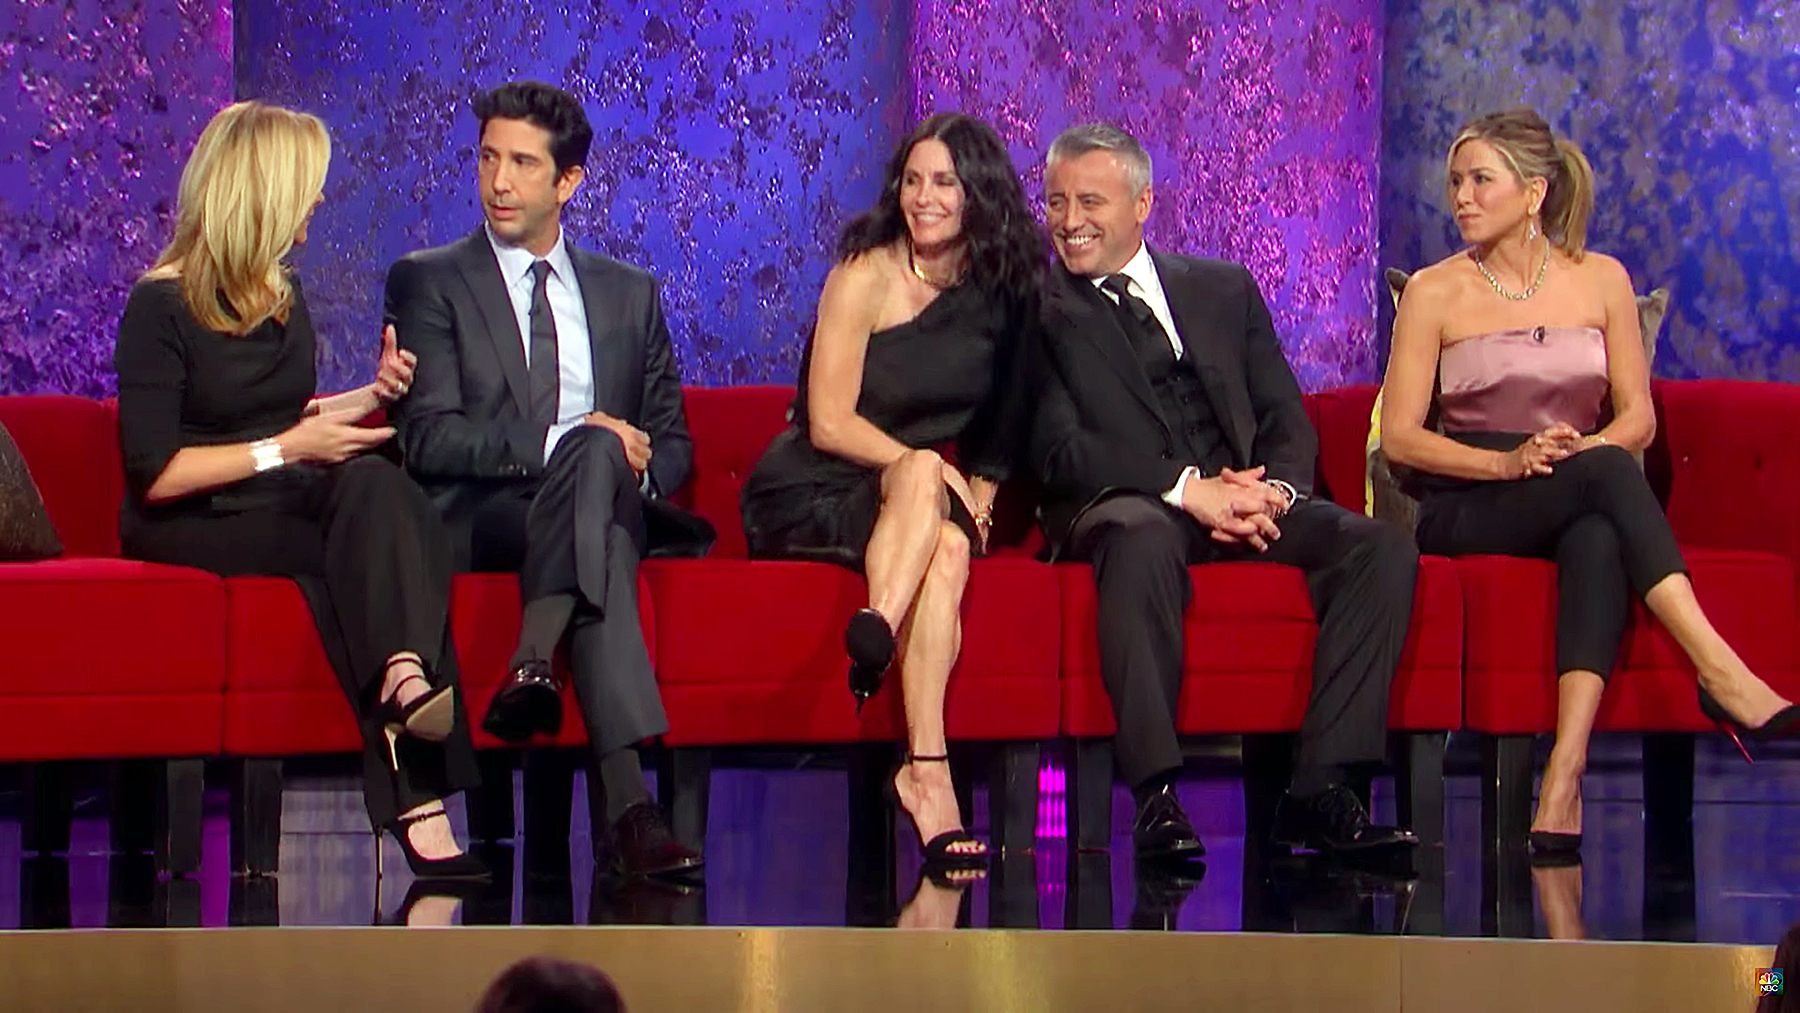 Friends' Reunion Trailer: Costars Reunite on Stage With Andy